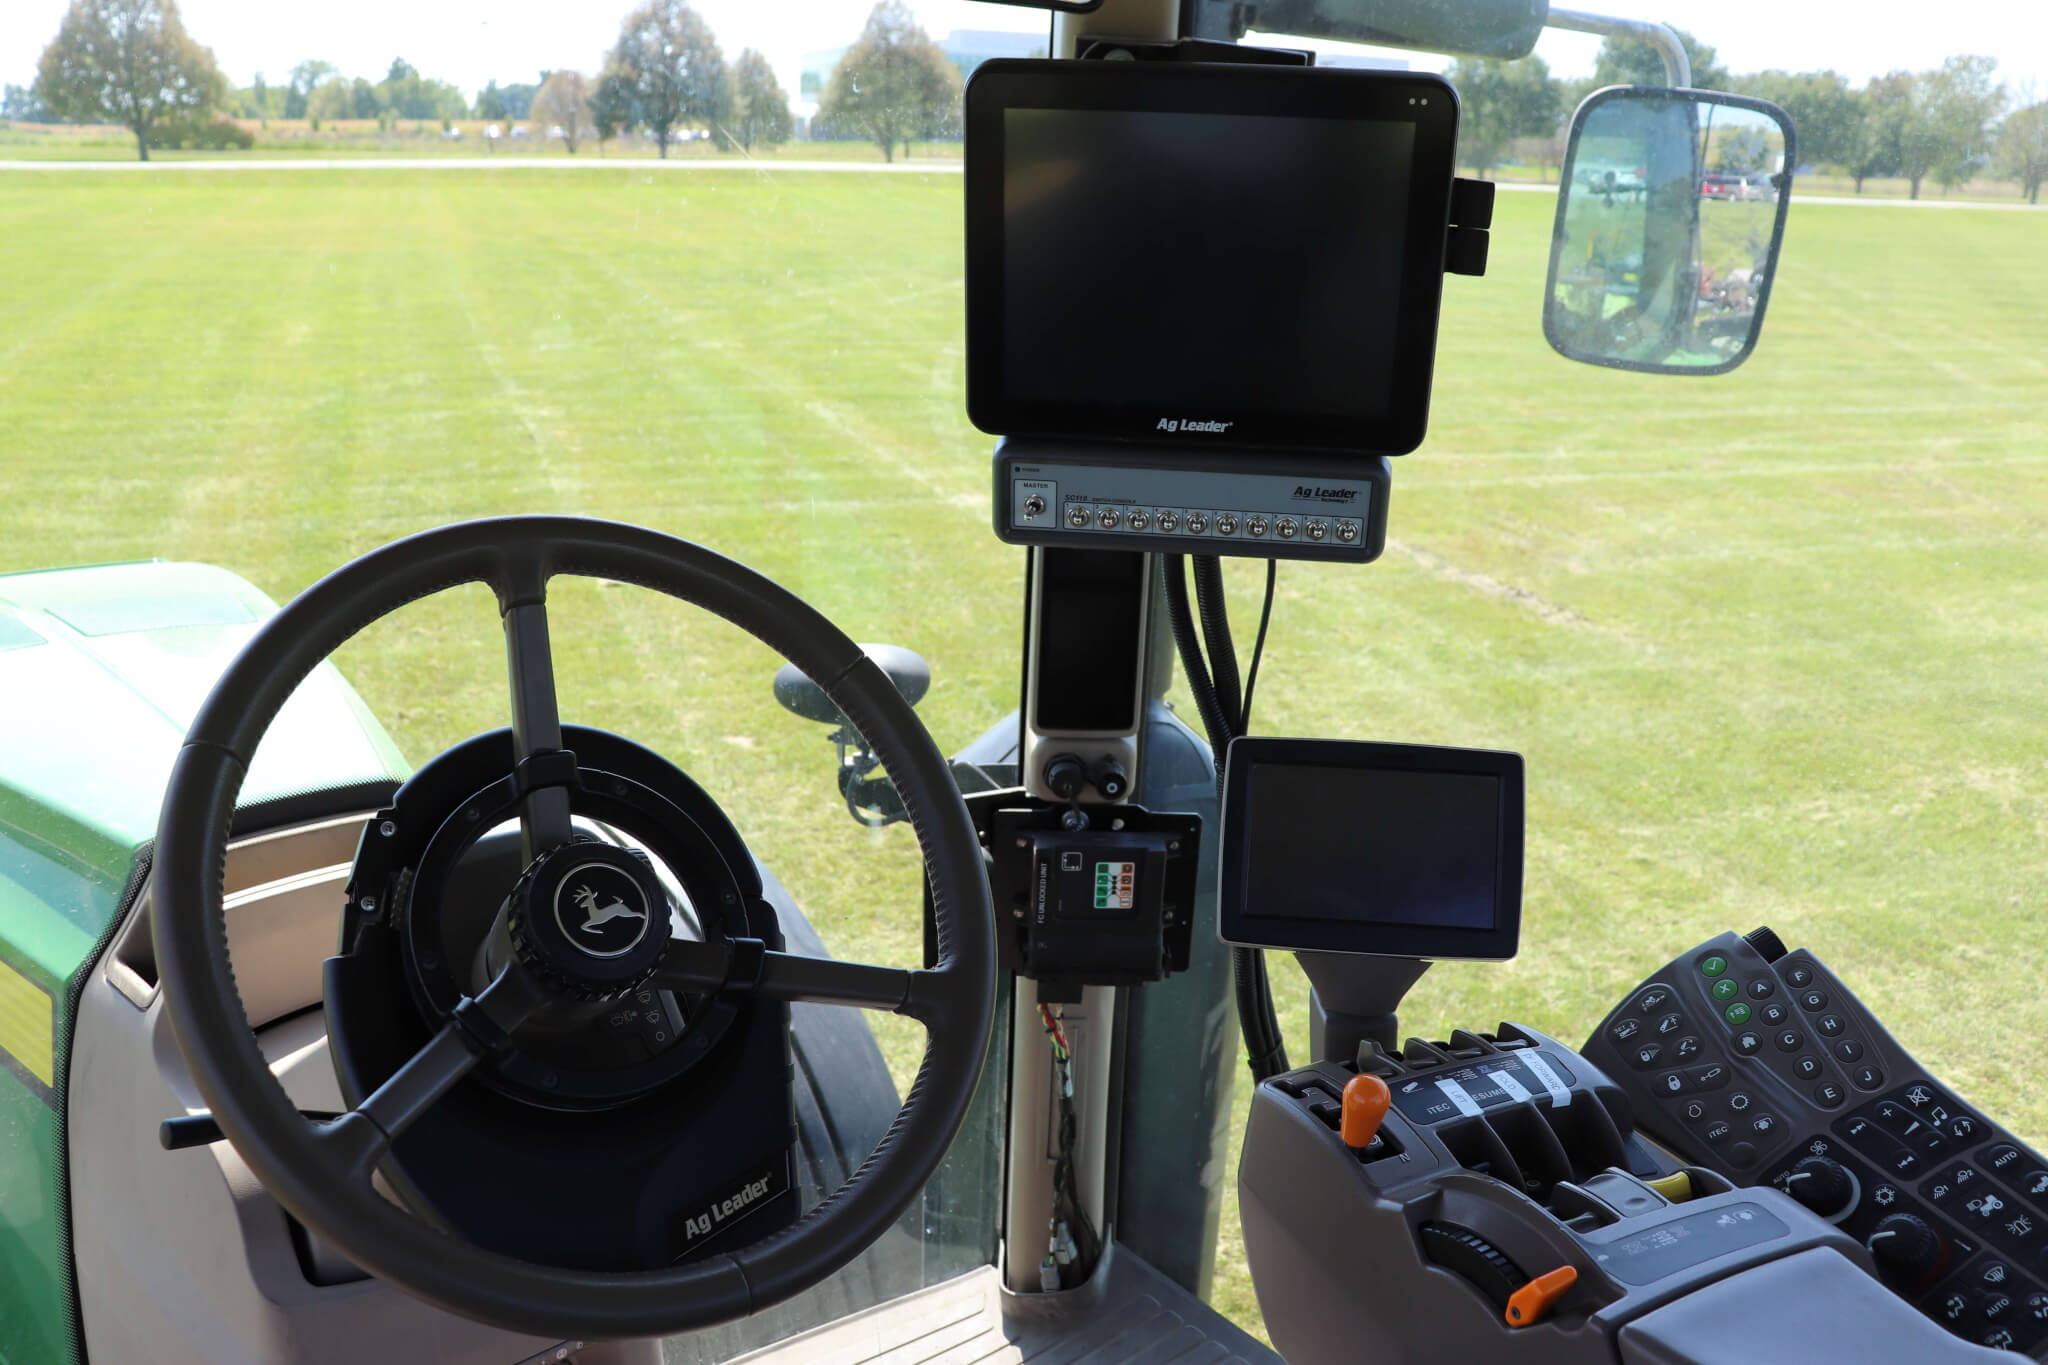 Suggested Devices for Internet in the Cab